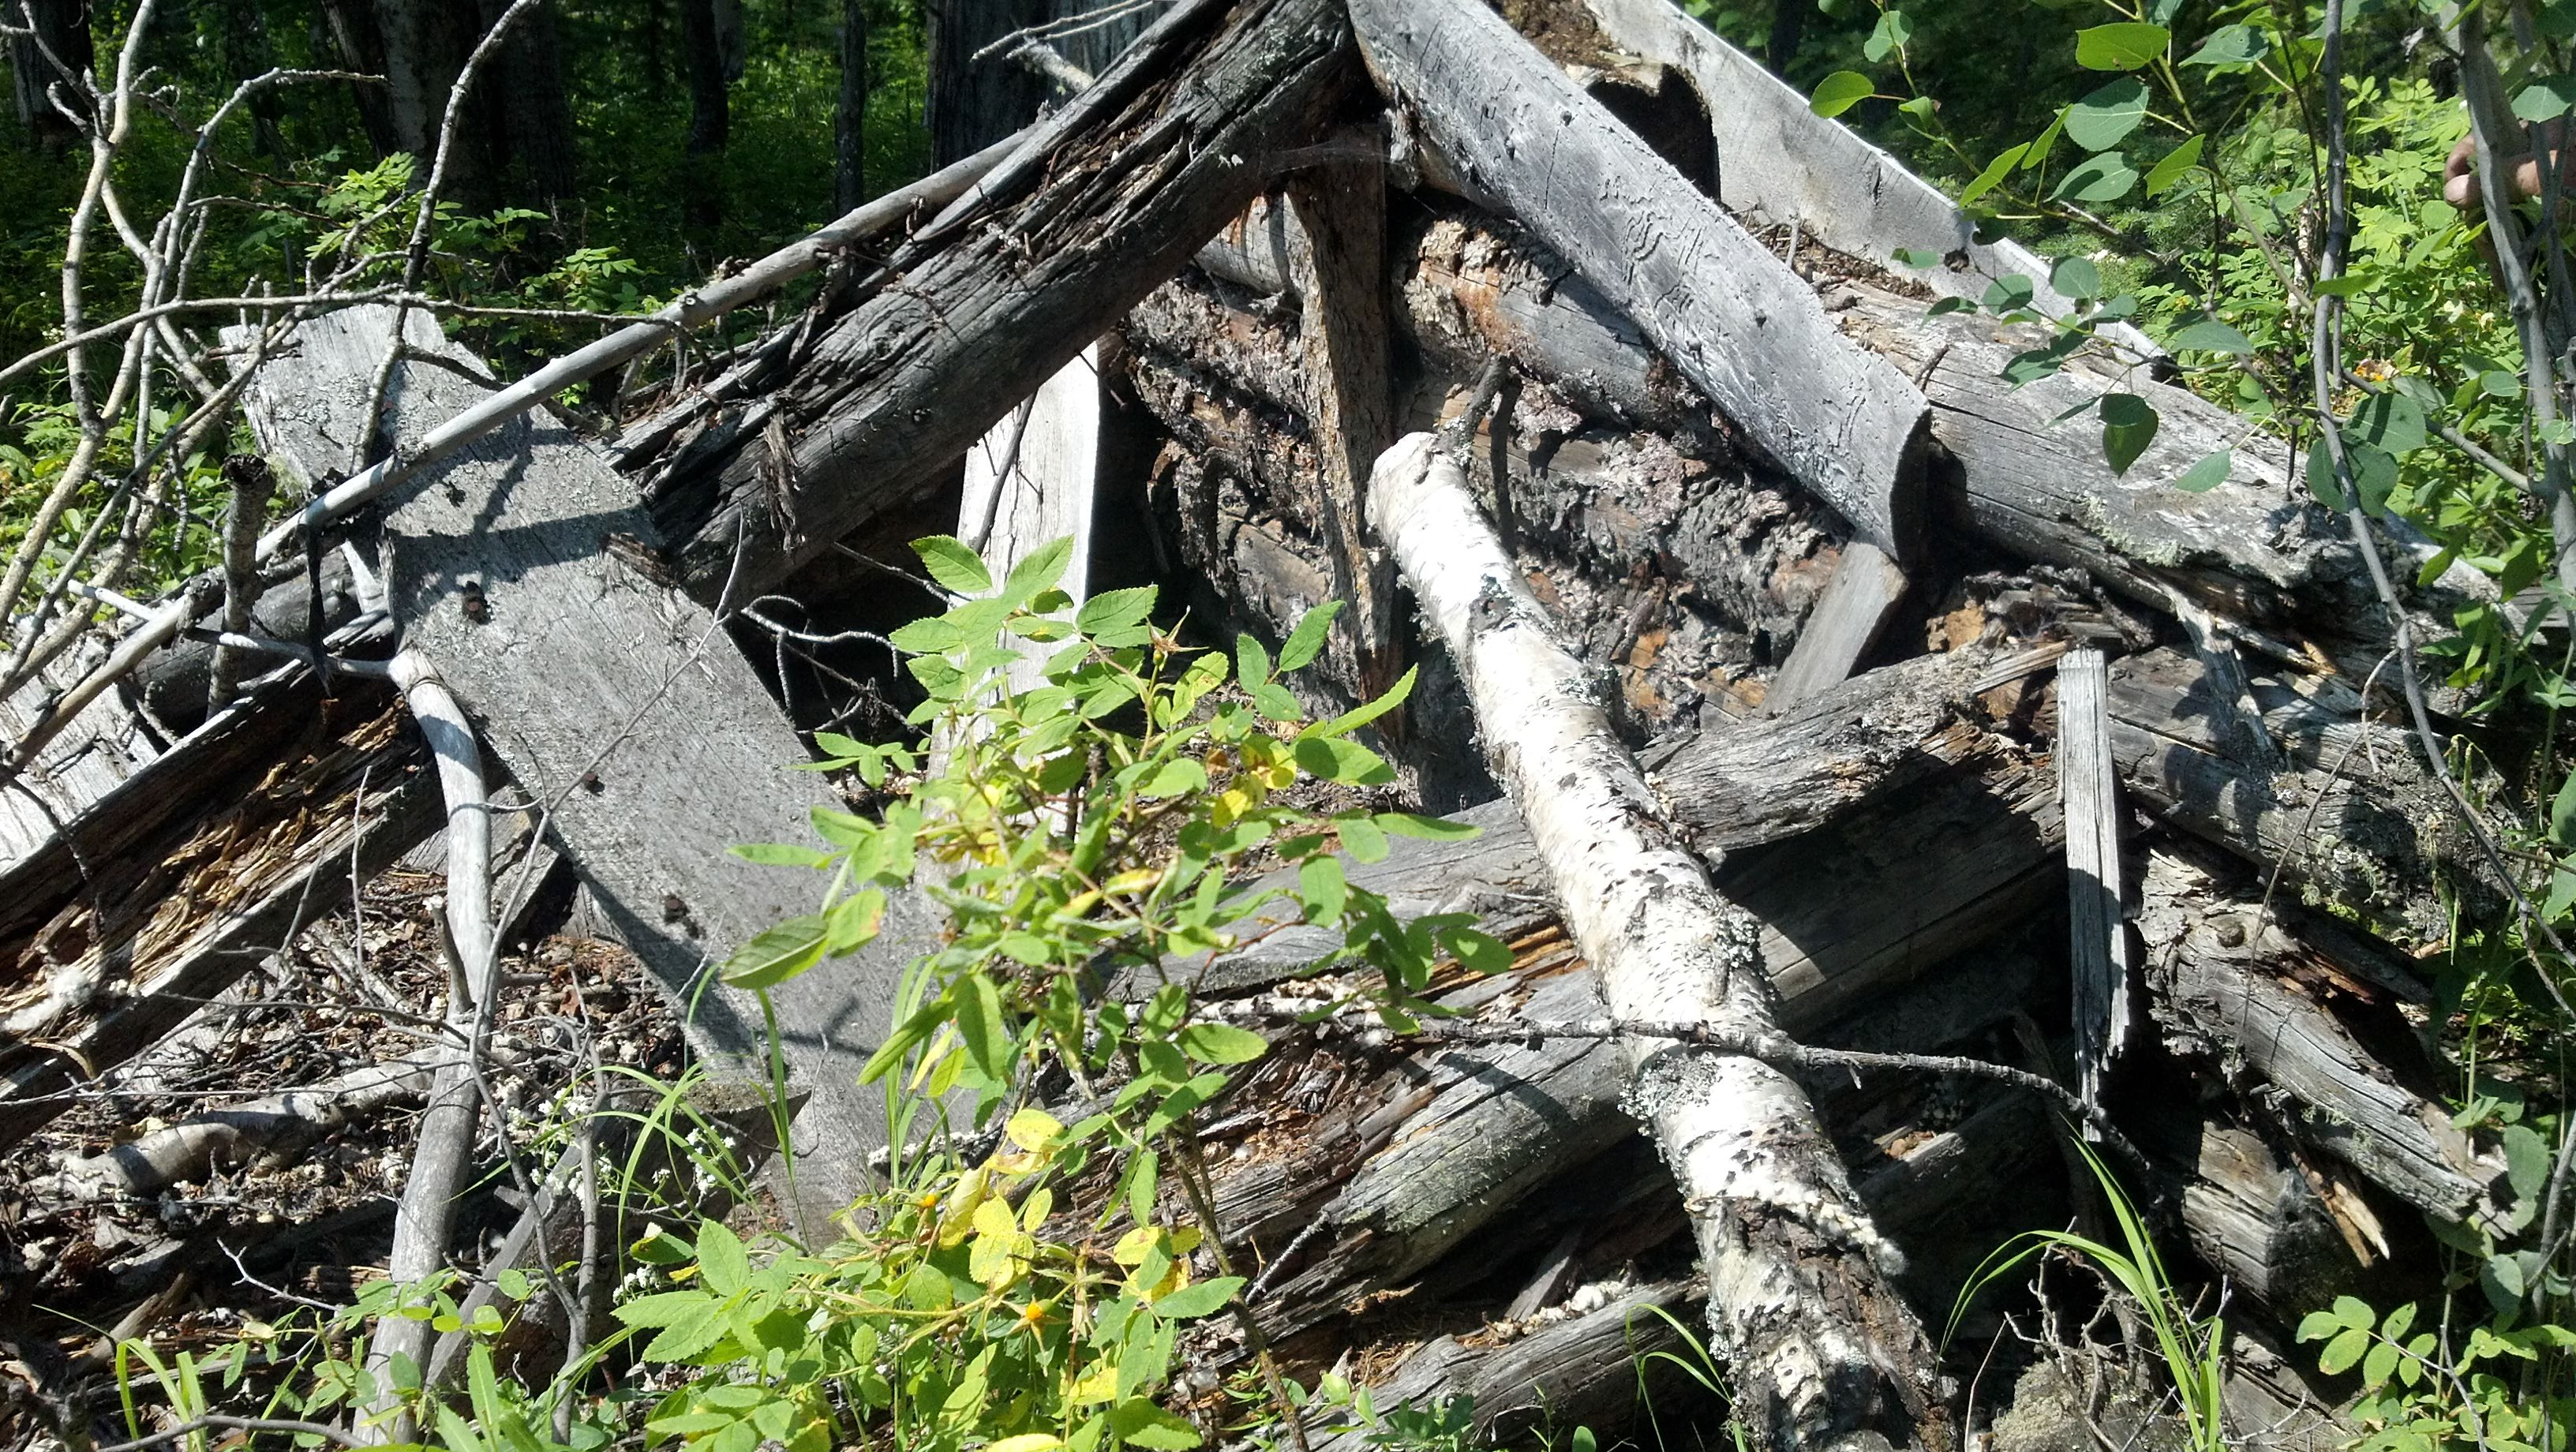 Remains of Trapper's Log Cabin built by my Great-Uncles. The nearby lake is named after them.